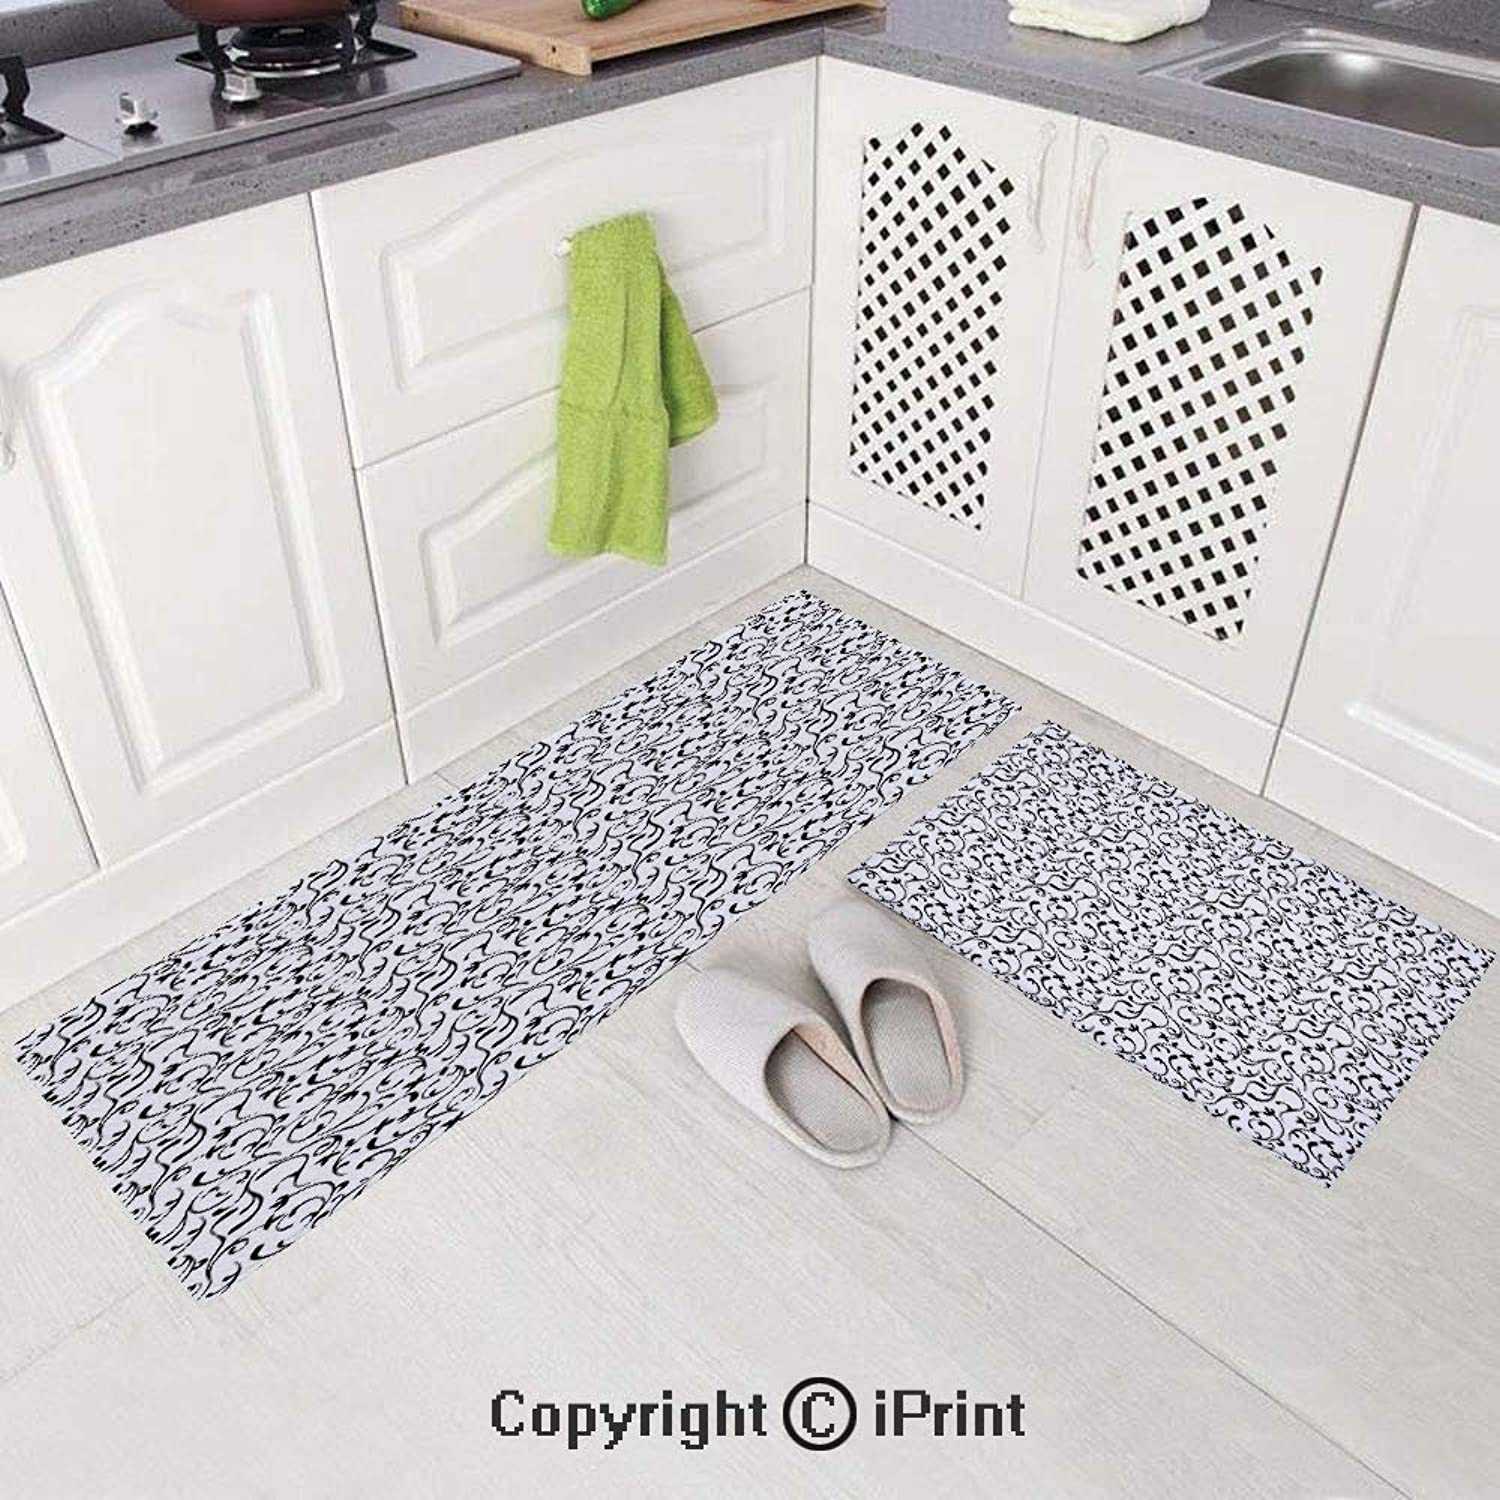 2 Piece Flannel Kitchen Rugs Cushioned Chef Soft (15 x47 +15 x23 ) Spring Themed Garden Pattern Monochrome Style Traditional Vintage Swirls Decorative,Non-Slip Rubber Back Floor Mats Washable Doormat